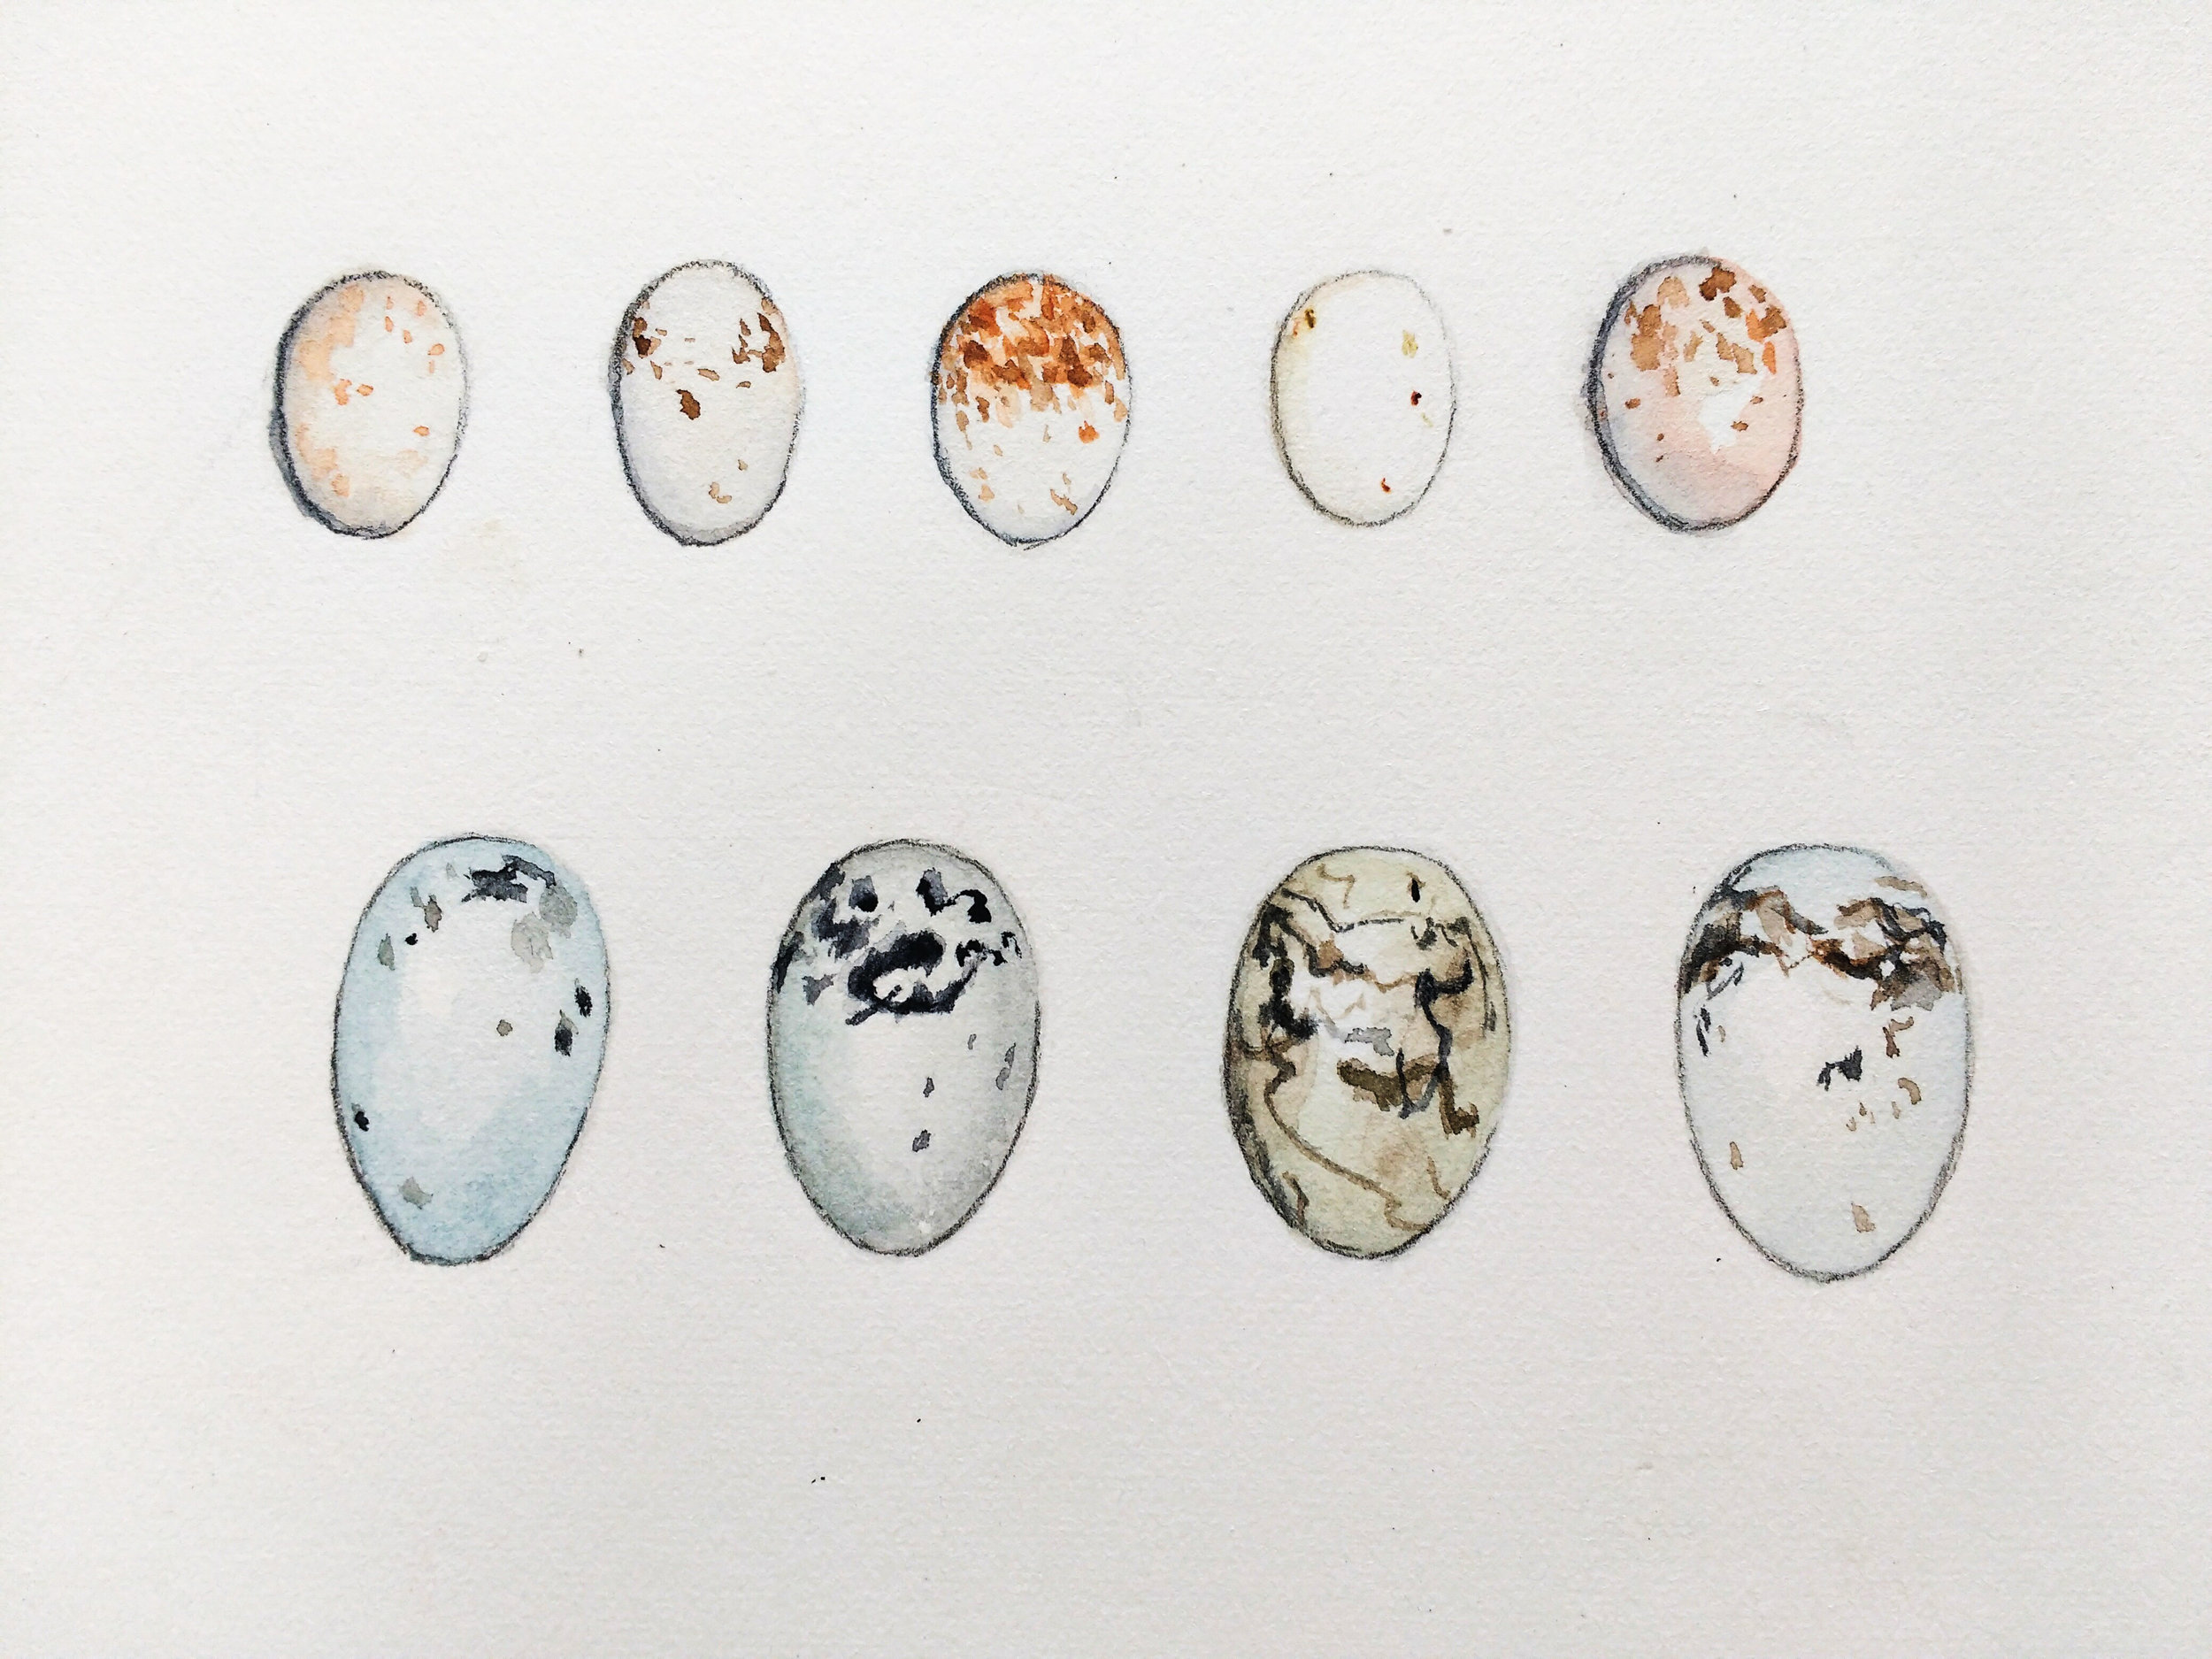 Common yellowthroat egg variation on top, with red-winged blackbird eggs on the bottom. Artwork by Carolyn Byers